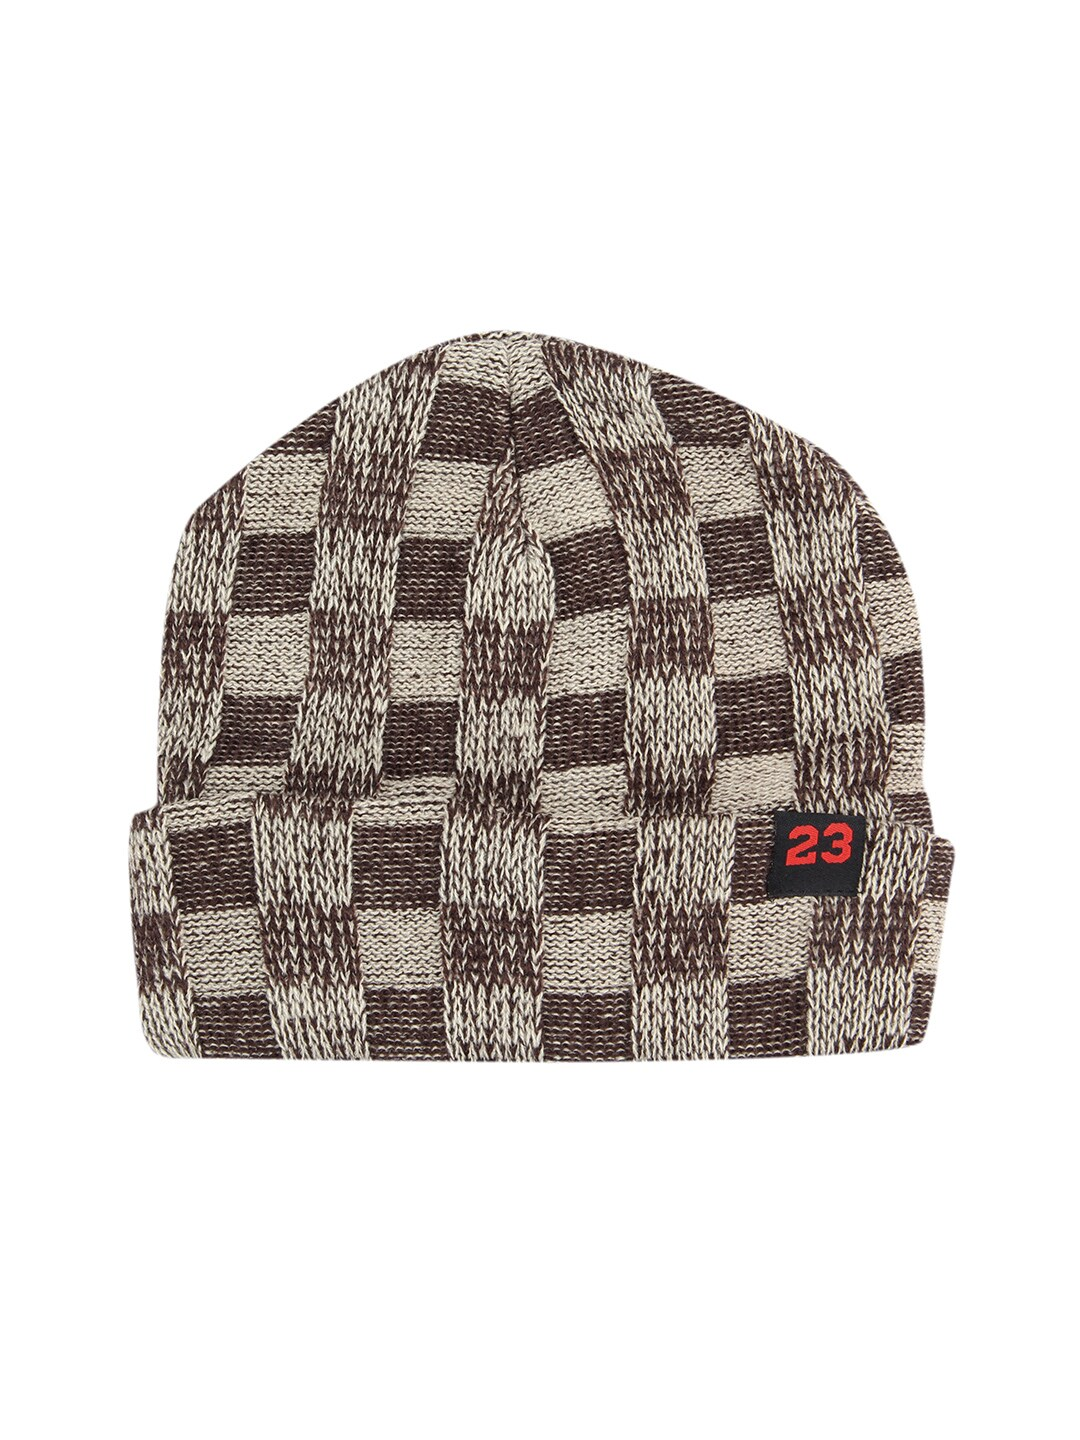 a30818f28e1 Fabseasons Casual Caps - Buy Fabseasons Casual Caps online in India